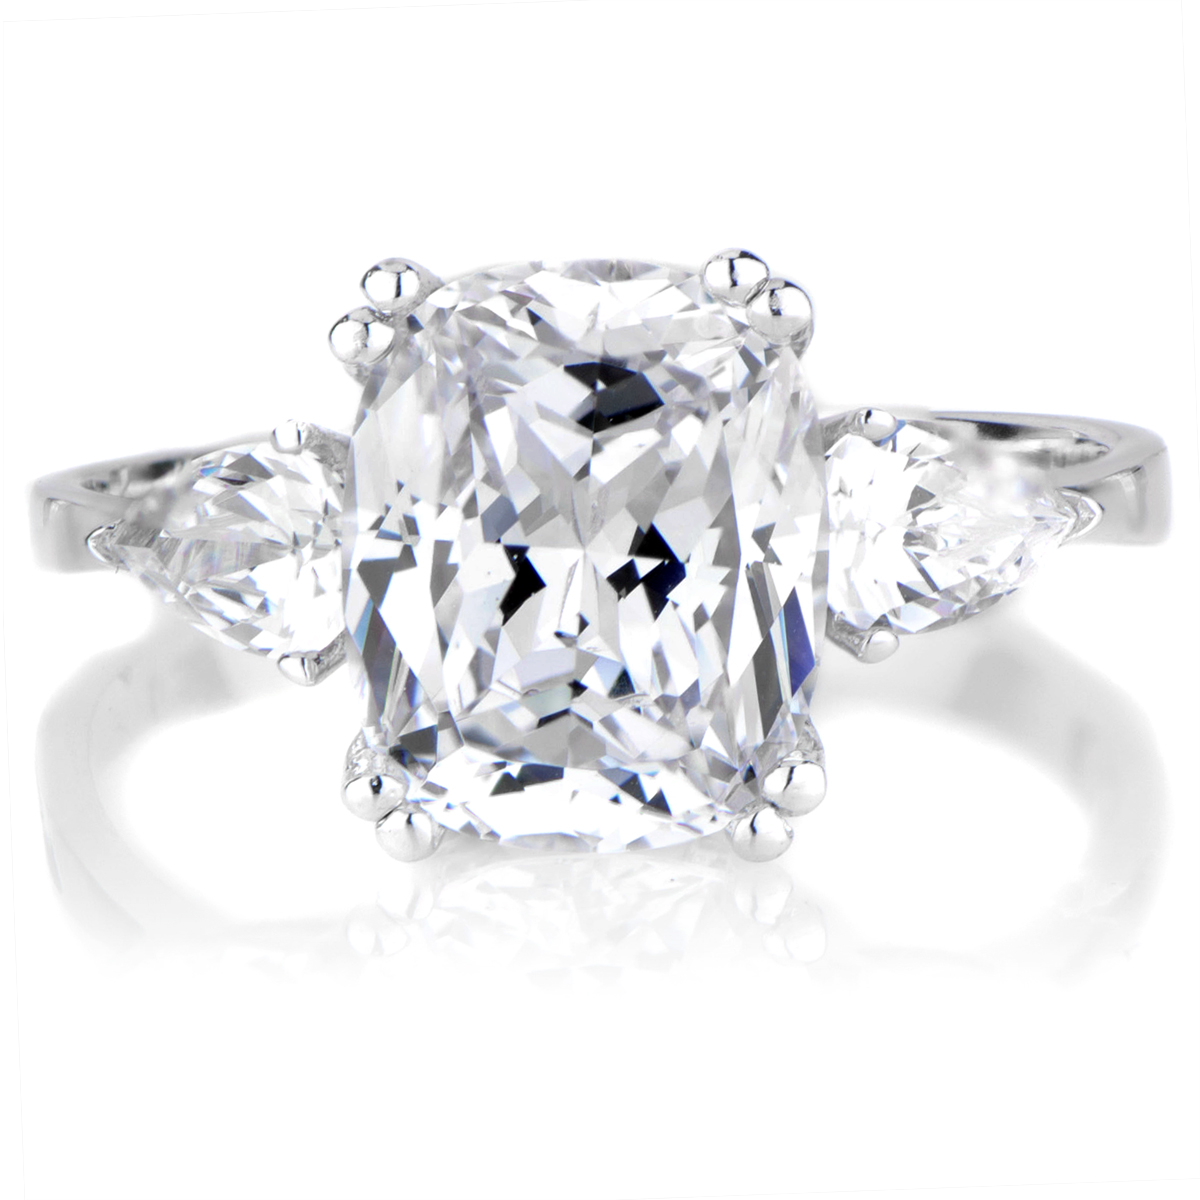 the gallery for gt cushion cut solitaire engagement rings